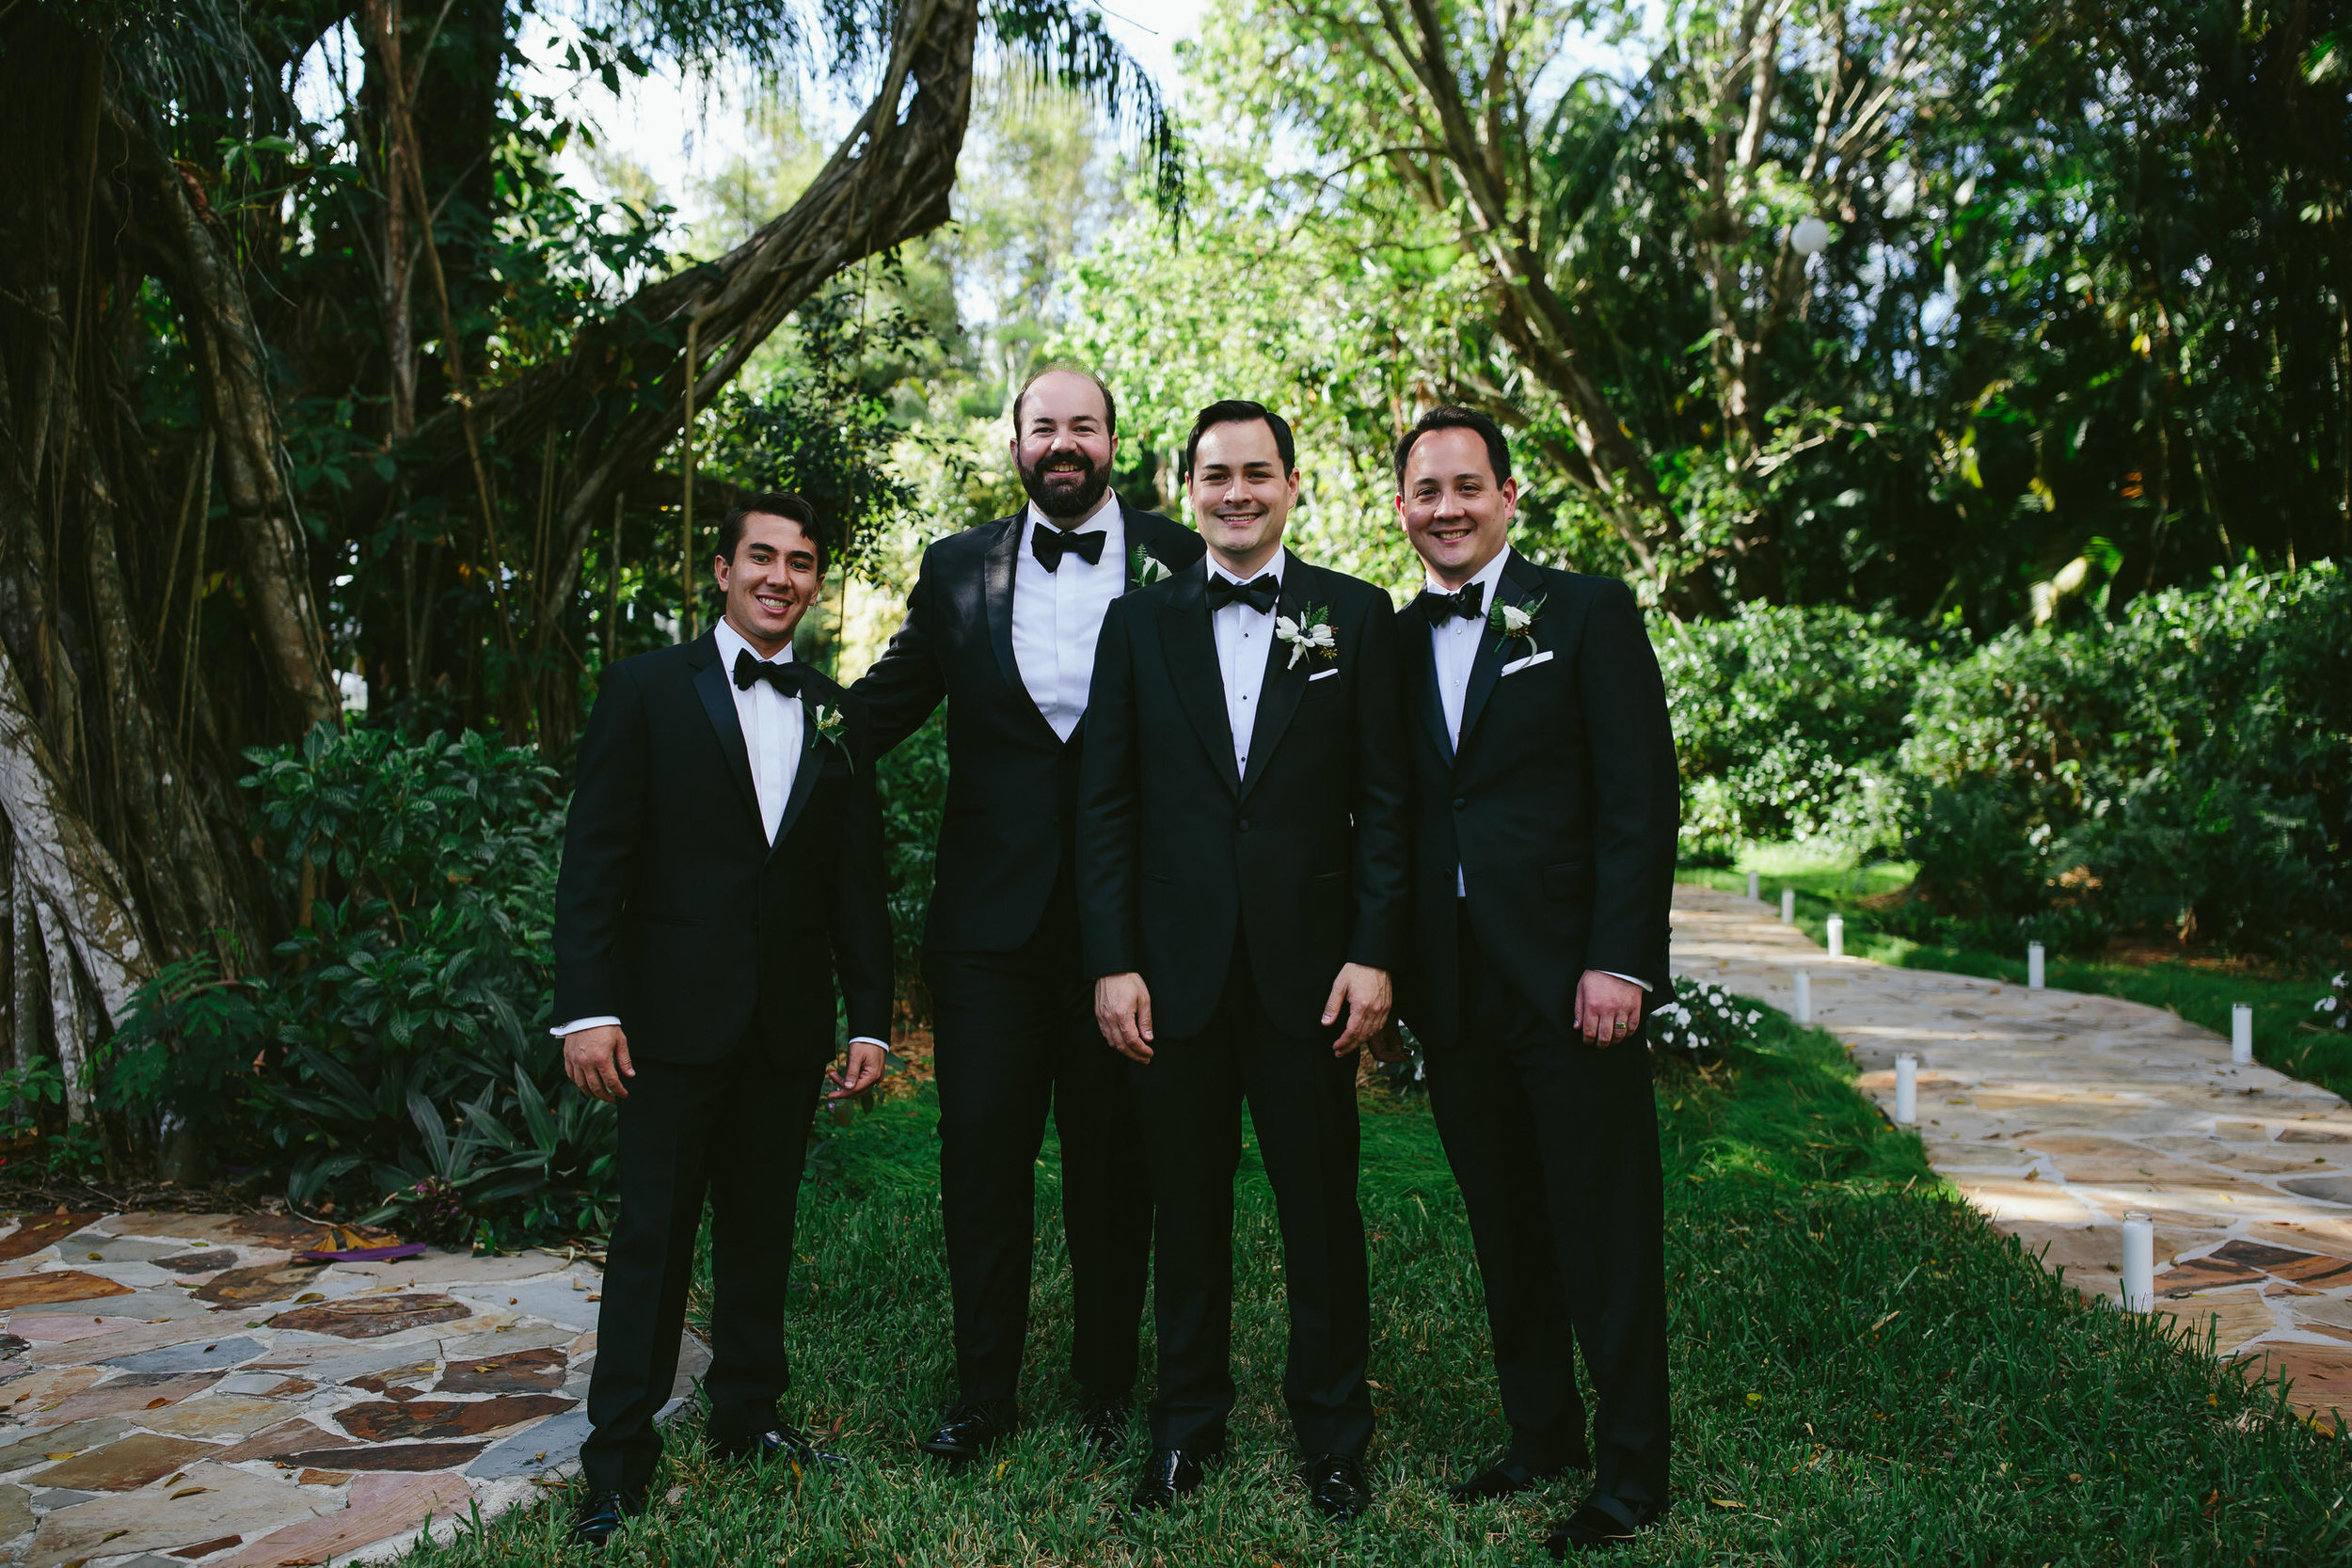 groomsman_formals_tiny_house_photo_classic_wedding_photography.jpg